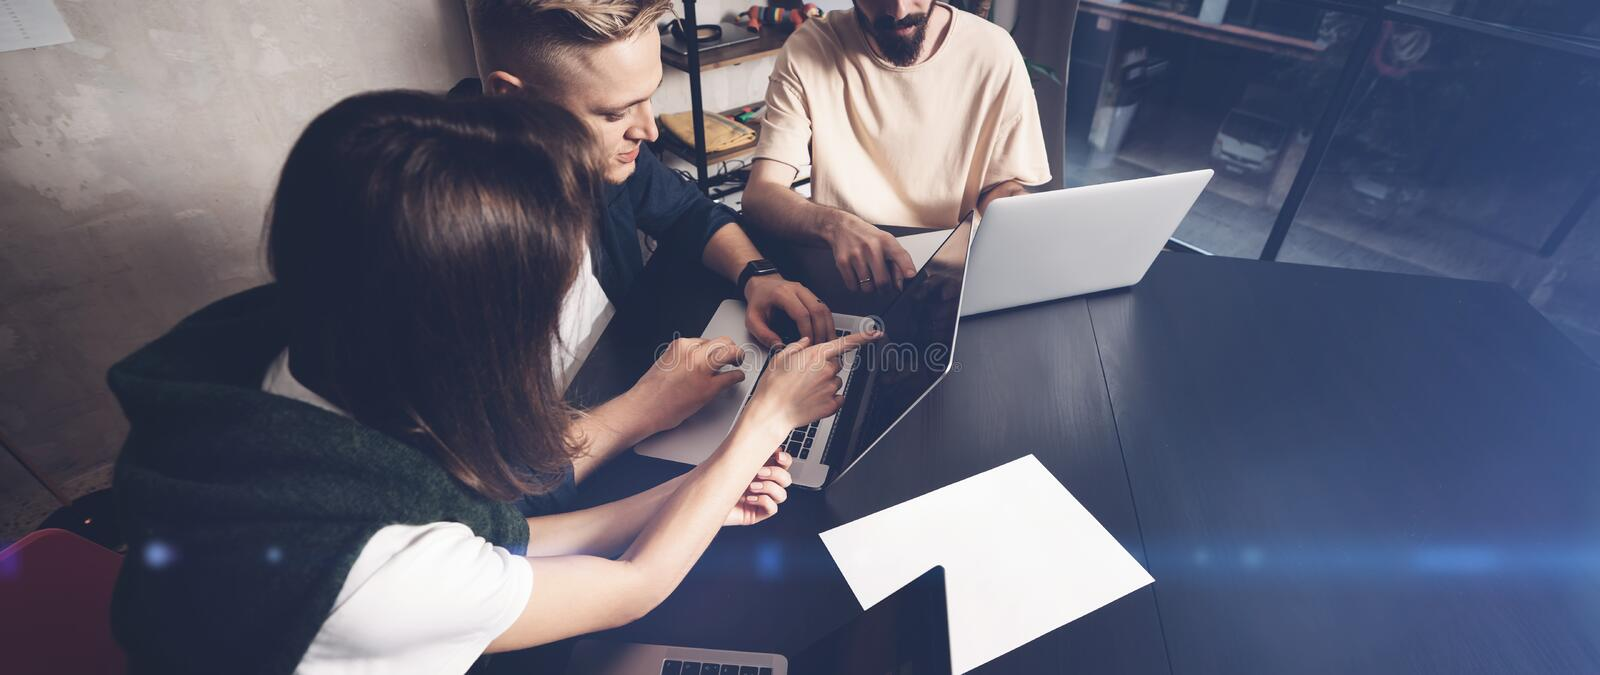 Coworkers team at work. Group of young business people in trendy casual wear working together in creative office.Wide royalty free stock images